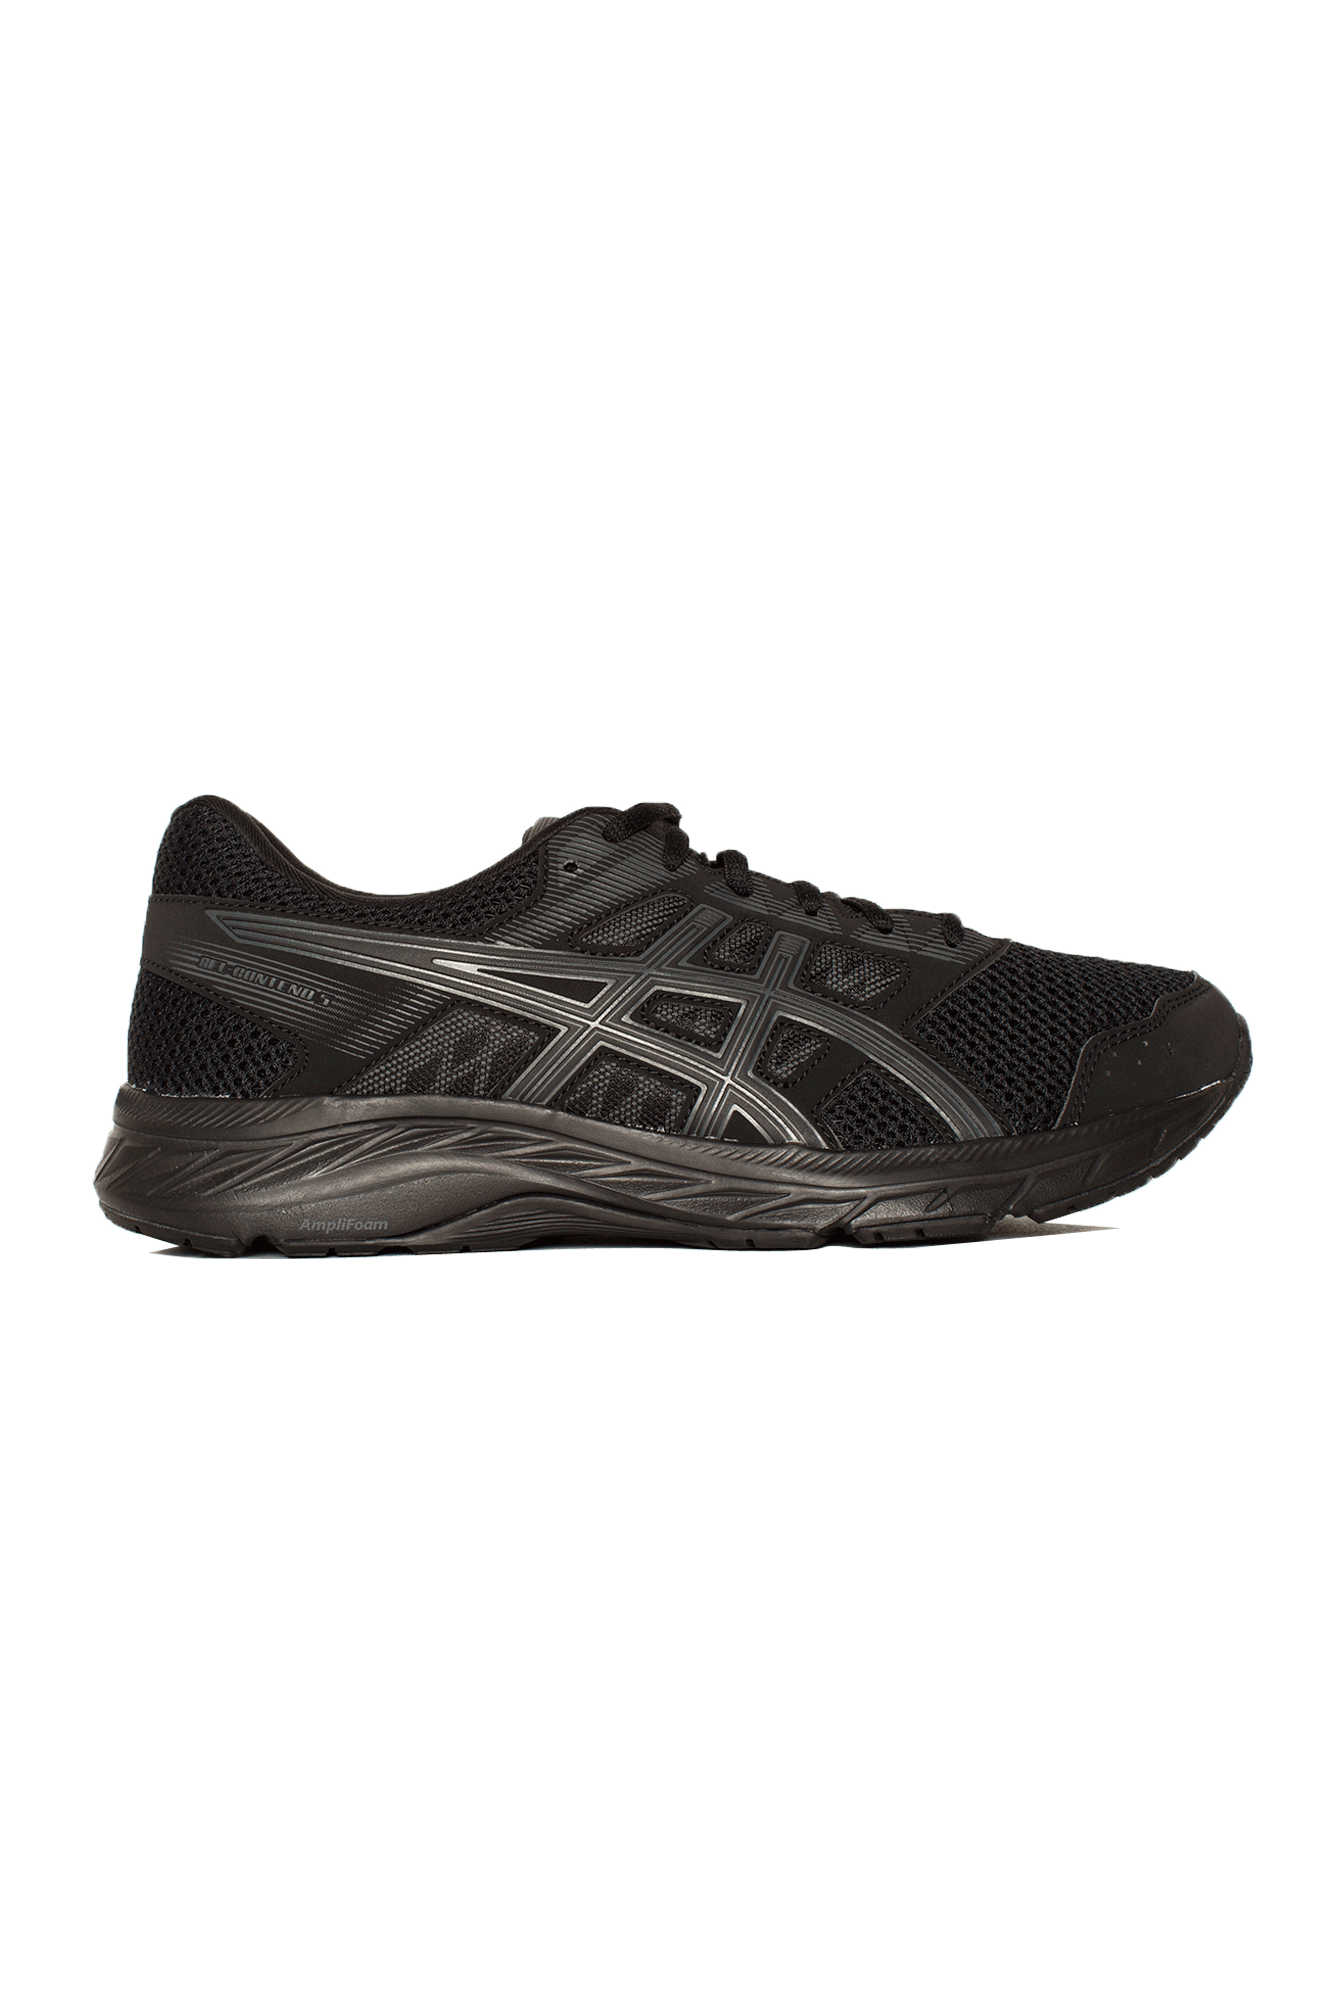 Asics Sneakers Gel Contend 5 Nero 1011A256#000#002#8,5 - One Block Down